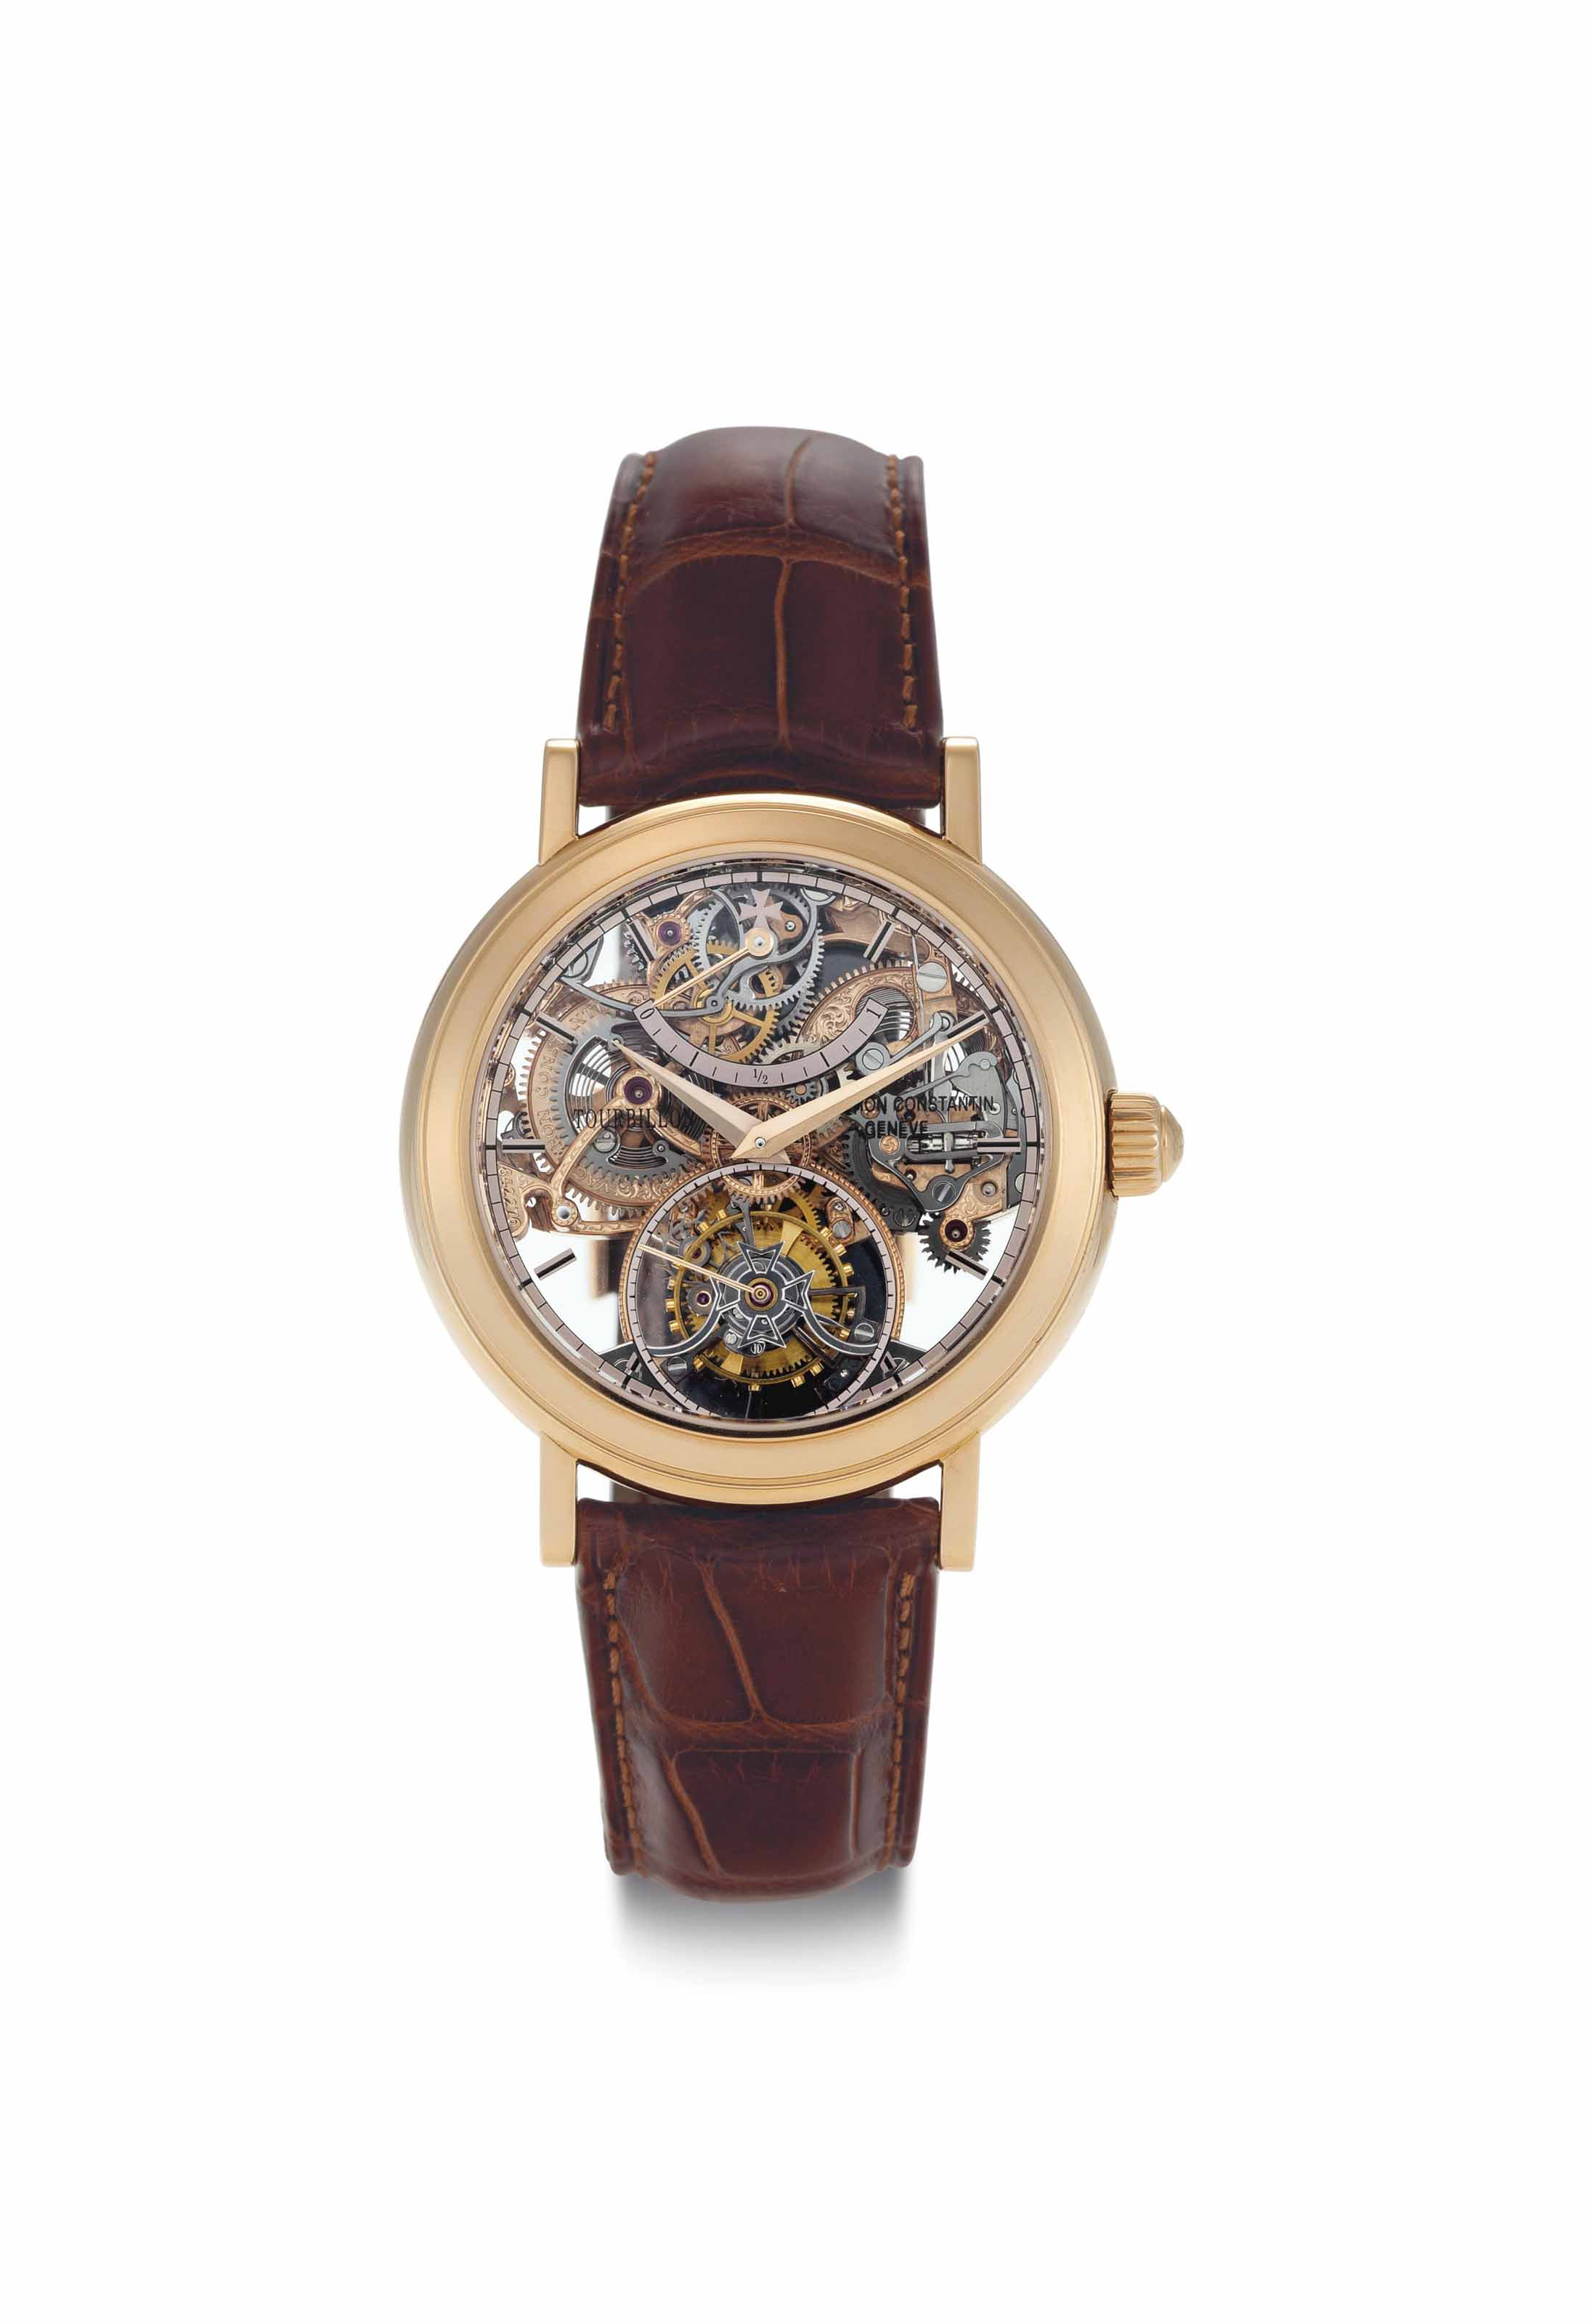 Vacheron Constantin. A Fine and Rare Limited Edition 18k Pink Gold Skeletonized Twin Barrel Tourbillon Wristwatch with Power Reserve